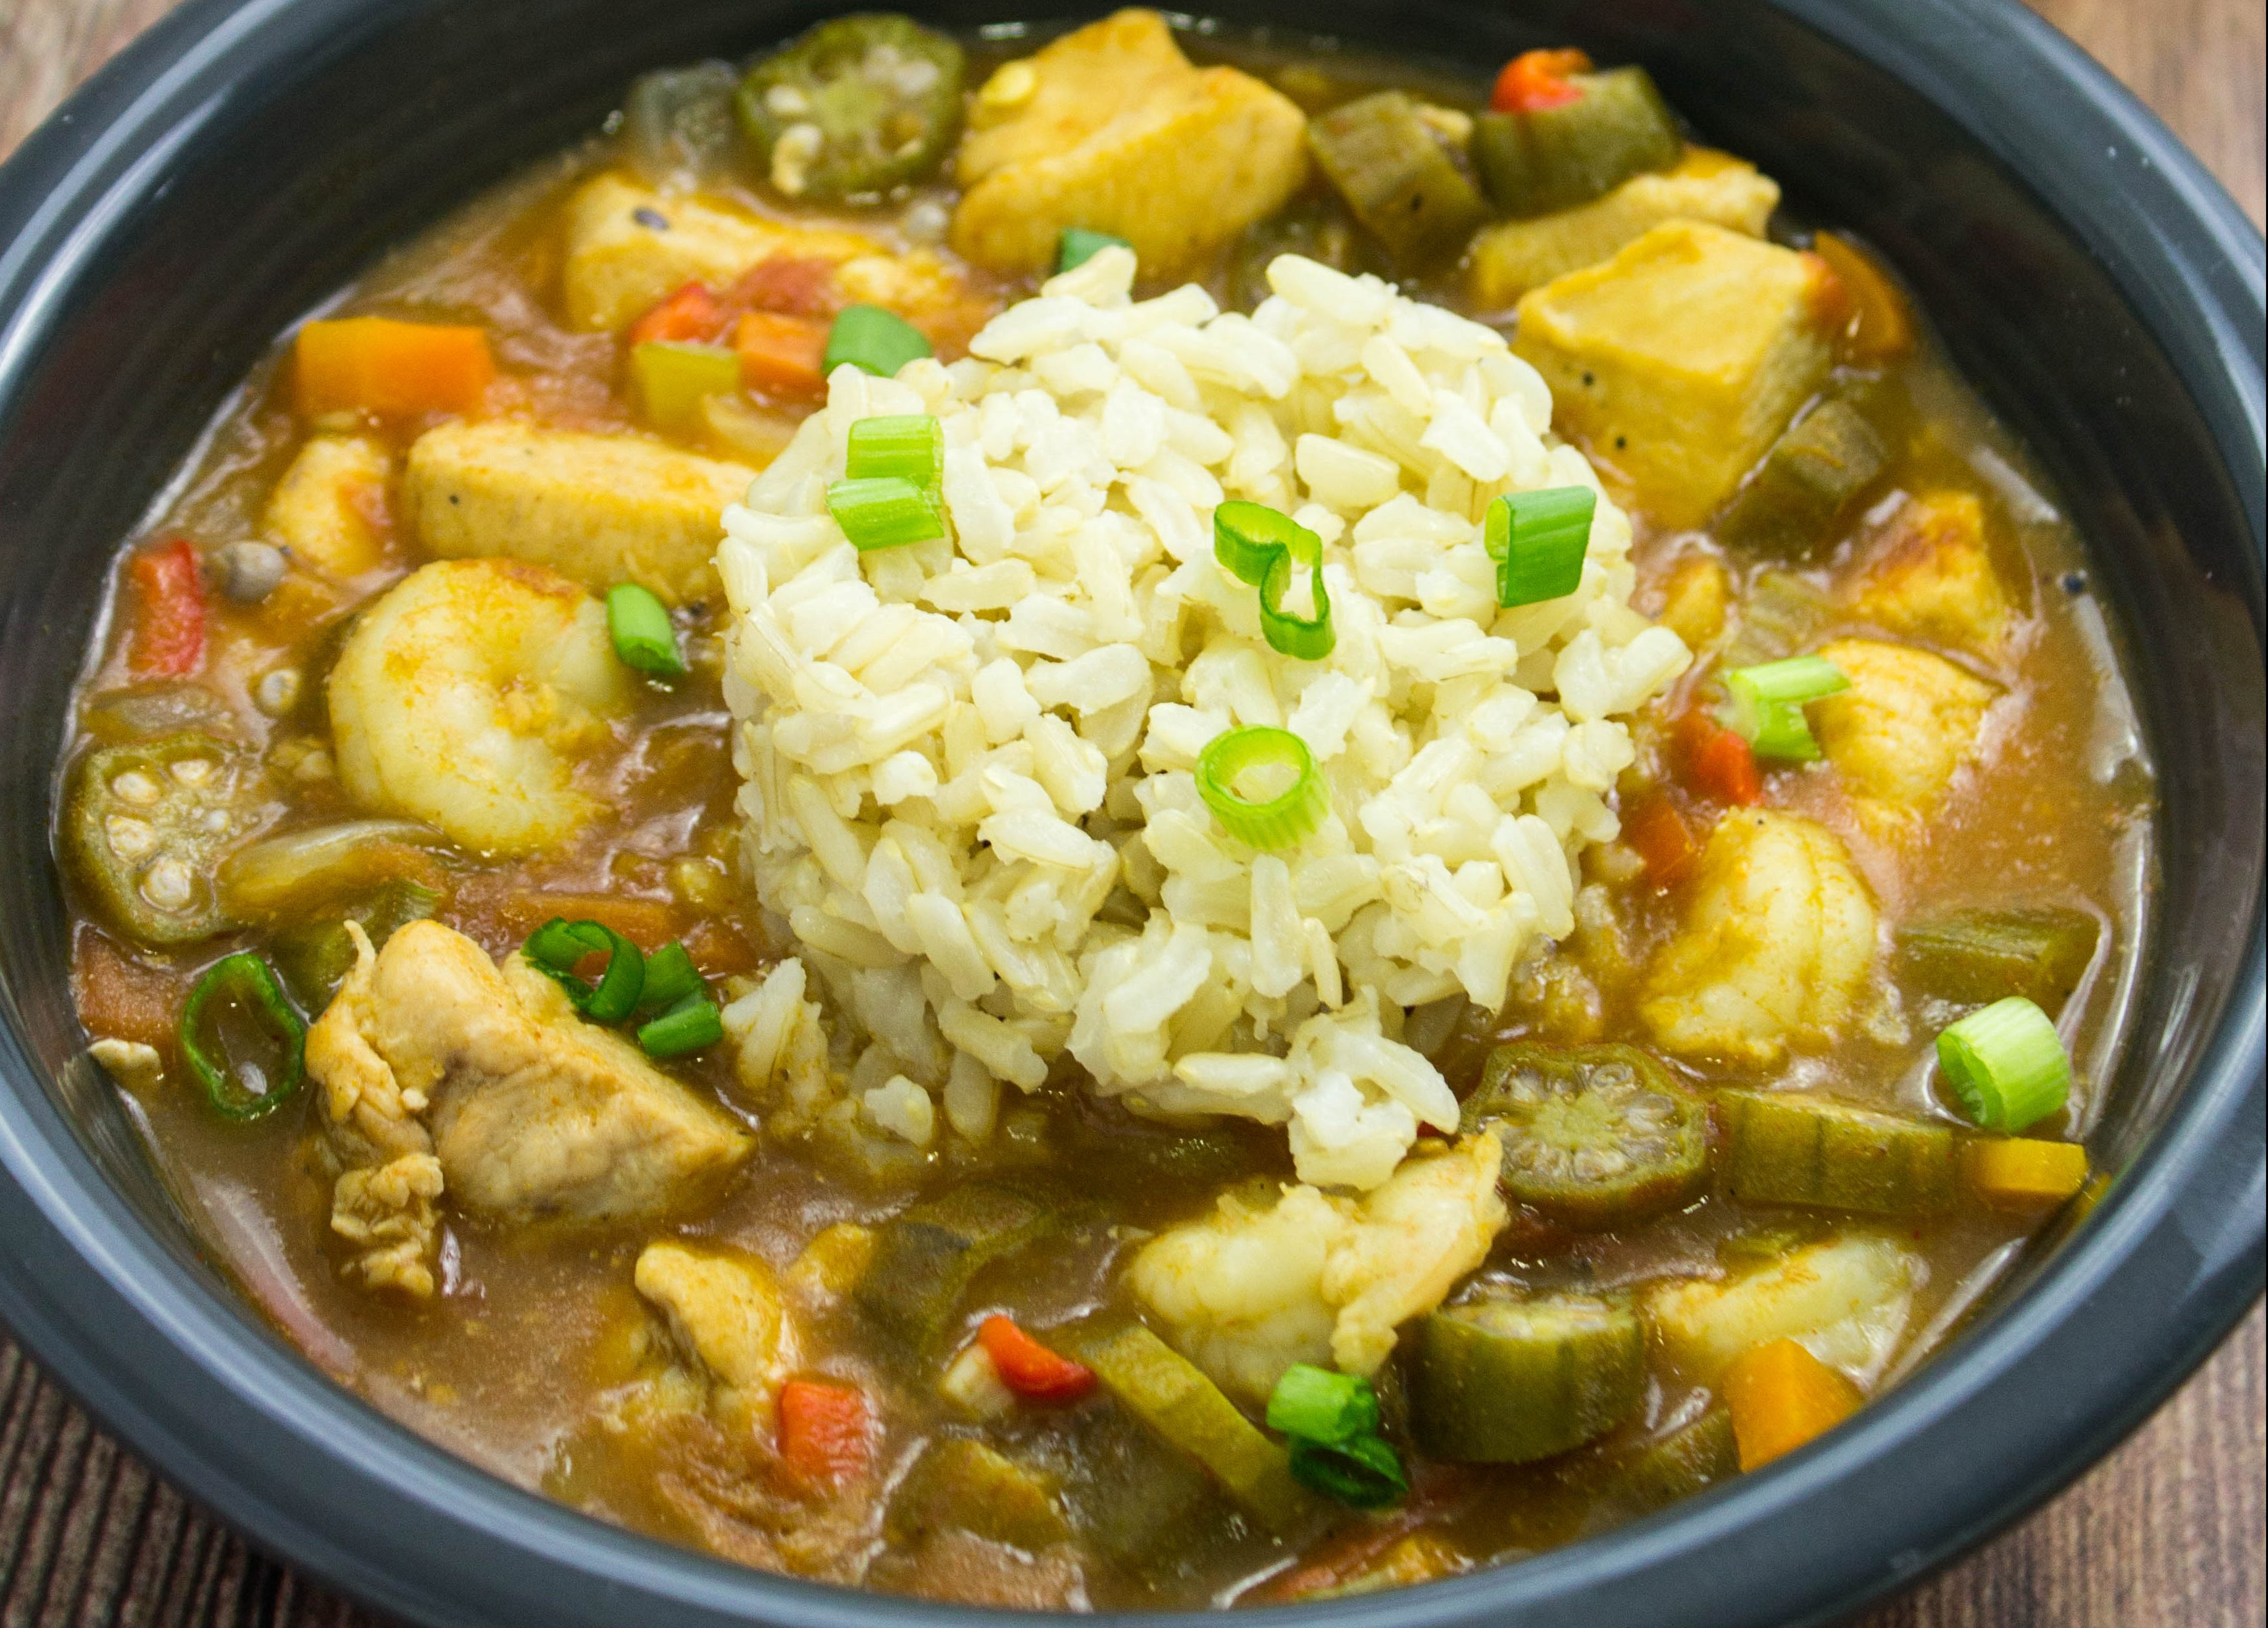 Chicken & Shrimp Gumbo- Diced chicken, vegetables, okra, & shrimp cooked in a decadent broth is delicious with every bite. Weight Watchers friendly. www.bitesofflavor.com